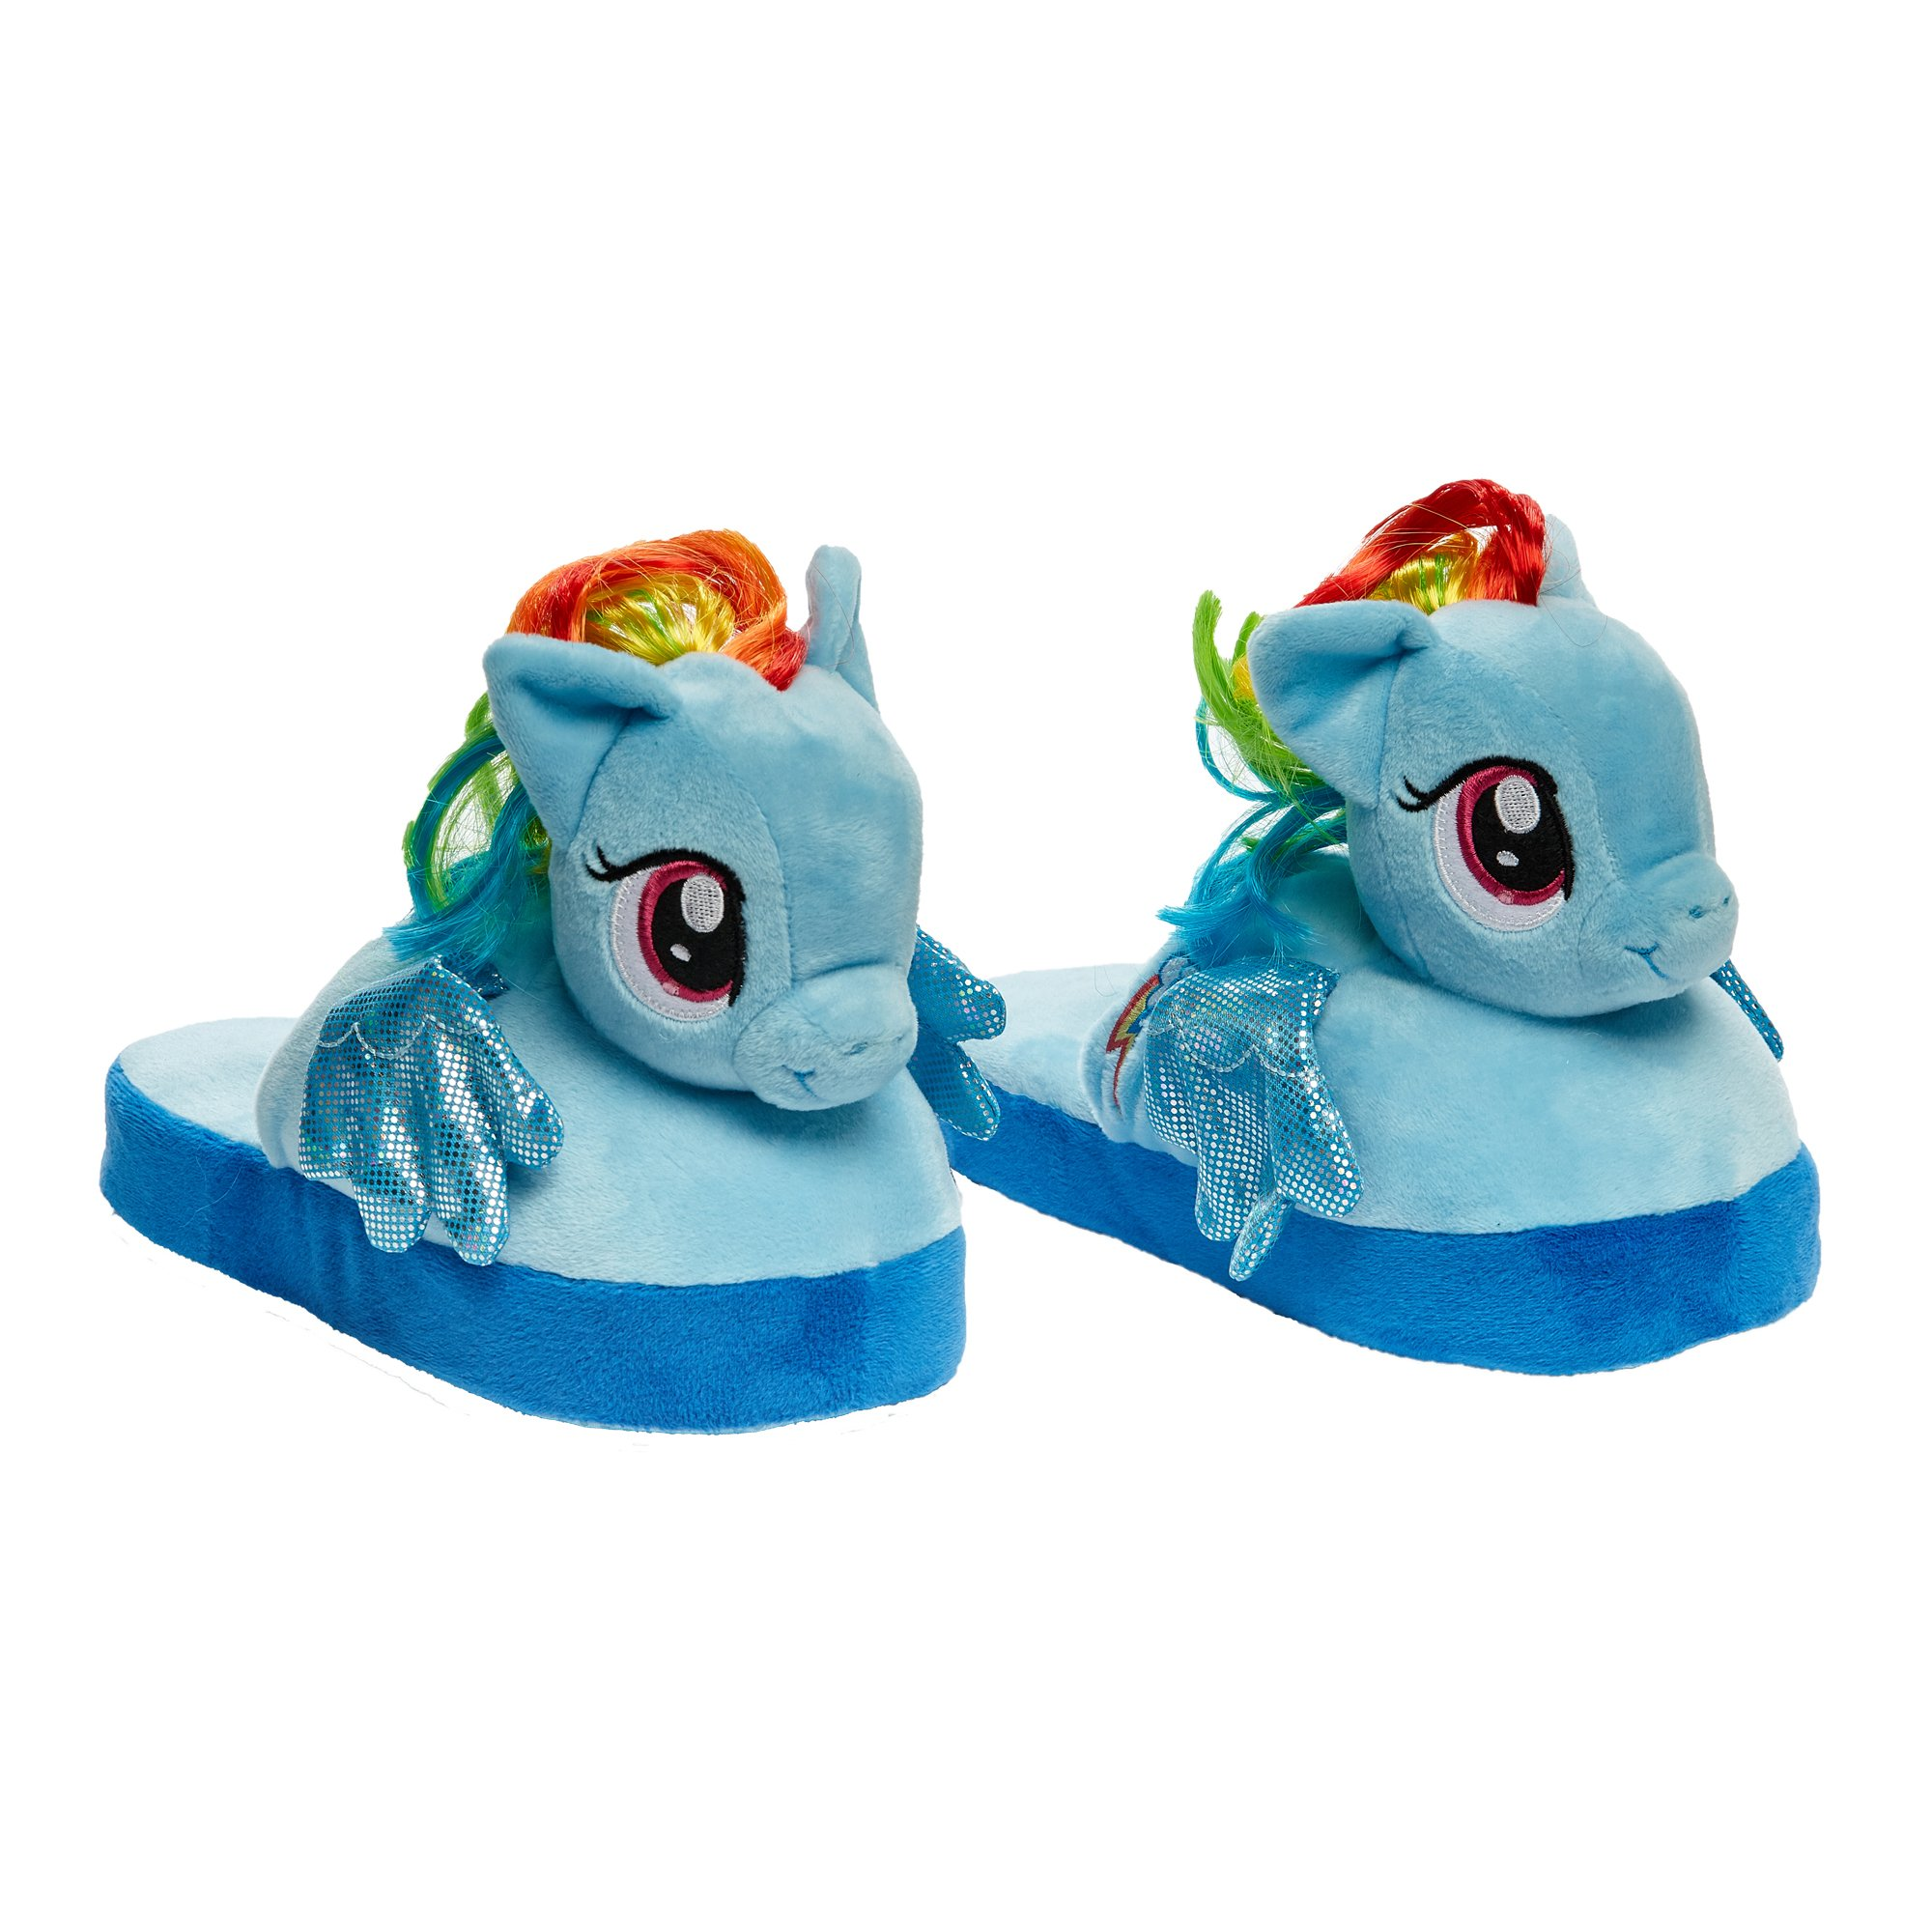 Stompeez Animated My Little Pony Plush Slippers - Ultra Soft and Fuzzy Rainbow Dash Character - Wings Flap as You Walk - Medium by Stompeez (Image #1)